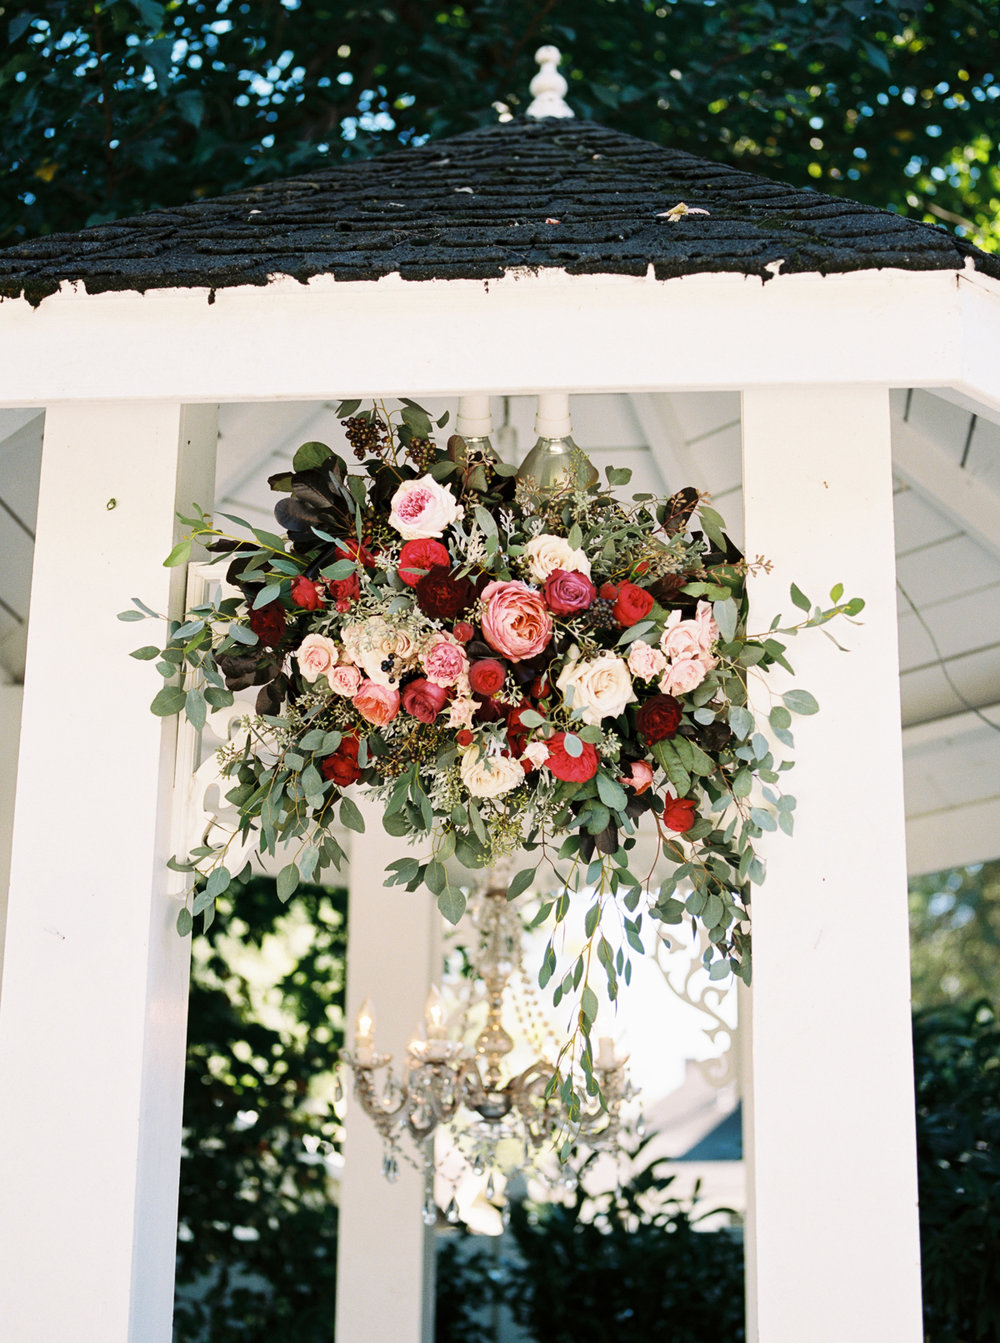 Gazebo Wedding Ceremony Backdrop with ombre pink to deep burgundy flowers // Nashville Wedding Florist